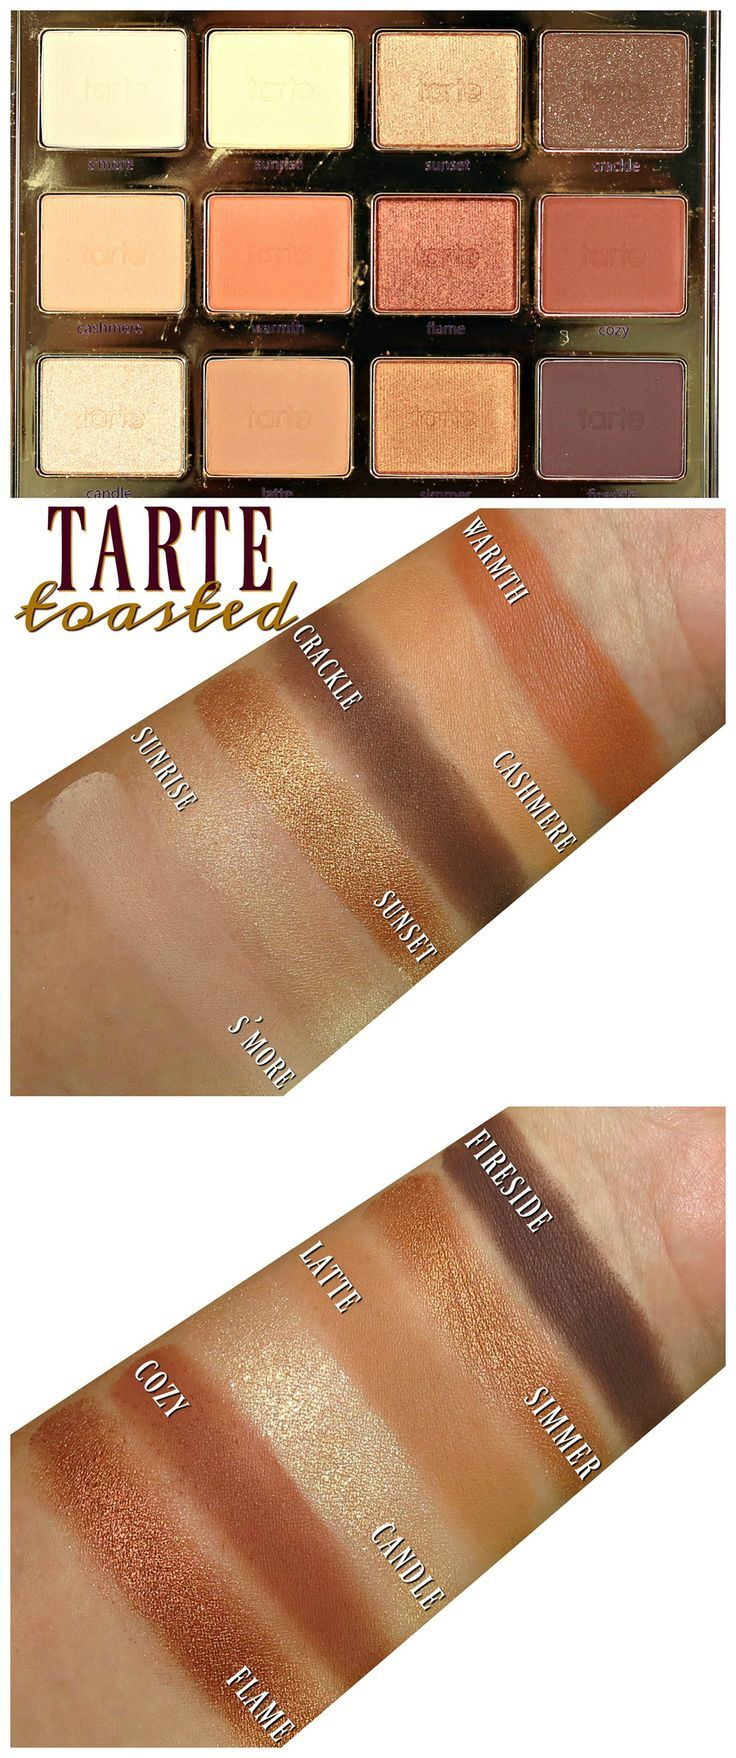 Tartelette Toasted Eyeshadow Palette by Tarte #22